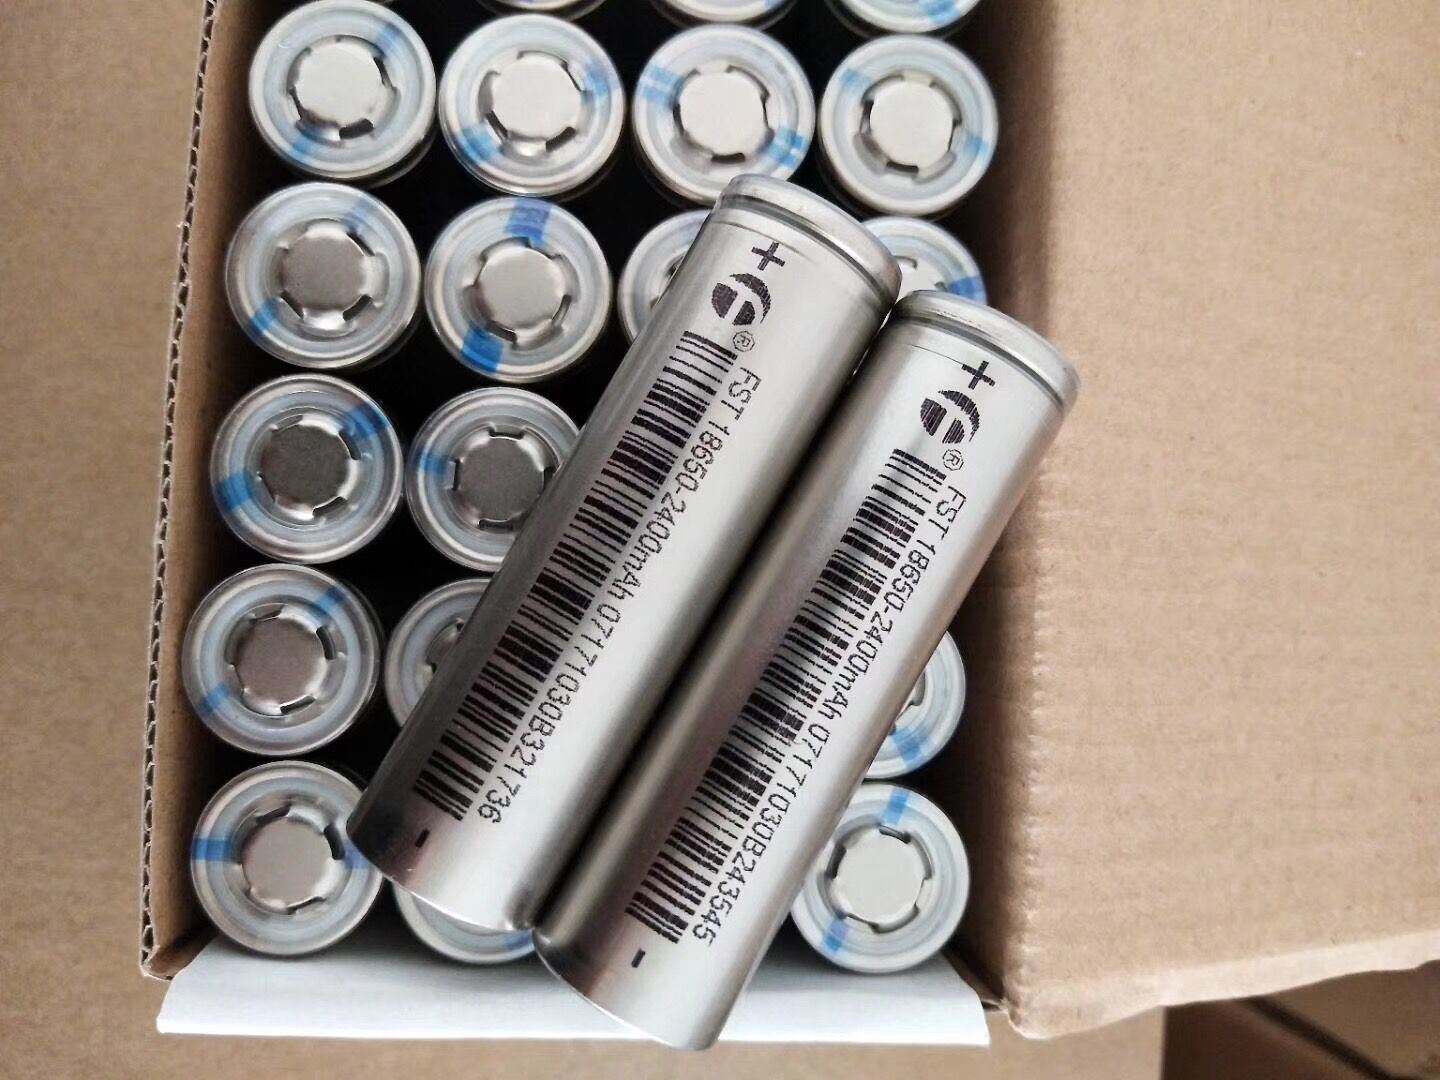 China Fst 37v 2400mah 5c Discharge Current 18650 Lithium Battery Rechargeable Liion Batteries W Protection Circuit Cell Li Ion